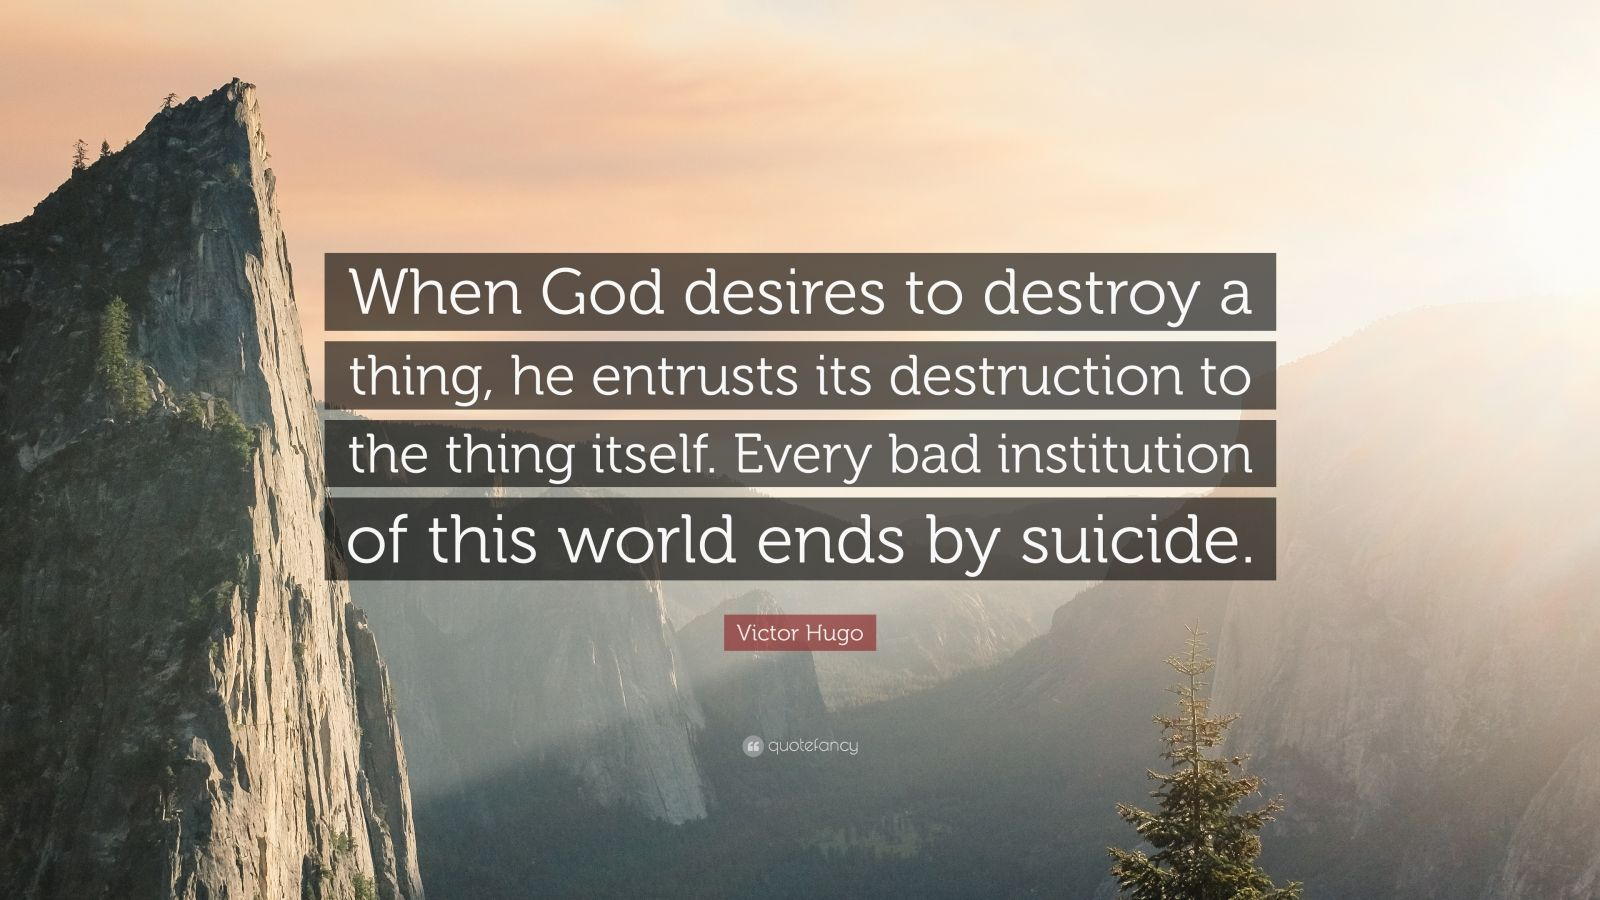 """Victor Hugo Quote: """"When God desires to destroy a thing, he entrusts its destruction to the thing itself. Every bad institution of this world ends by suicide."""""""